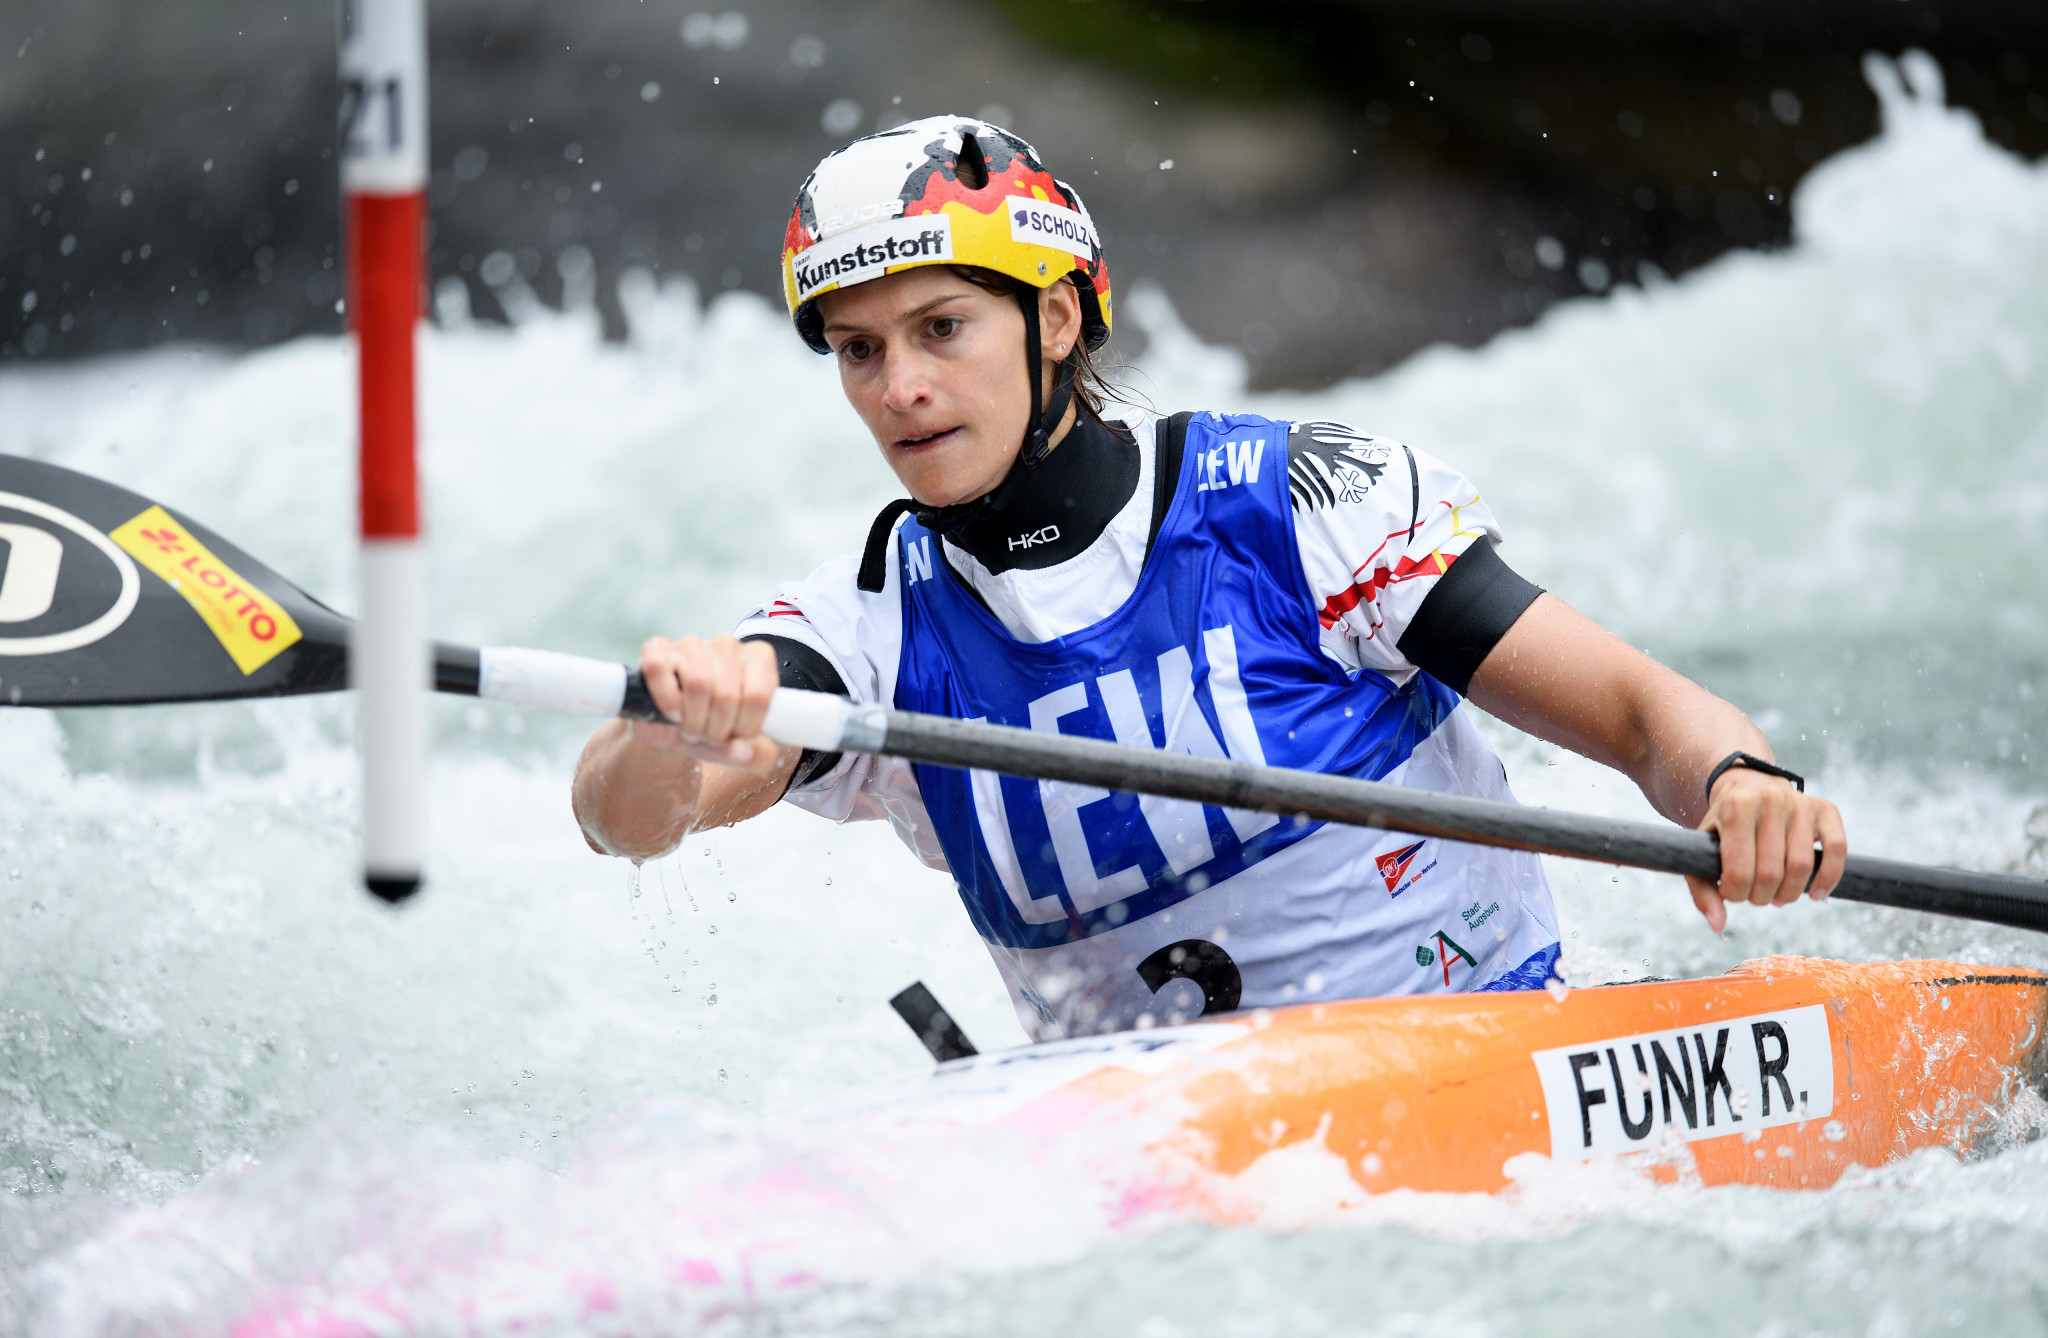 Ricarda Funk will hope to add a world title to her recent World Cup success ©Getty Images